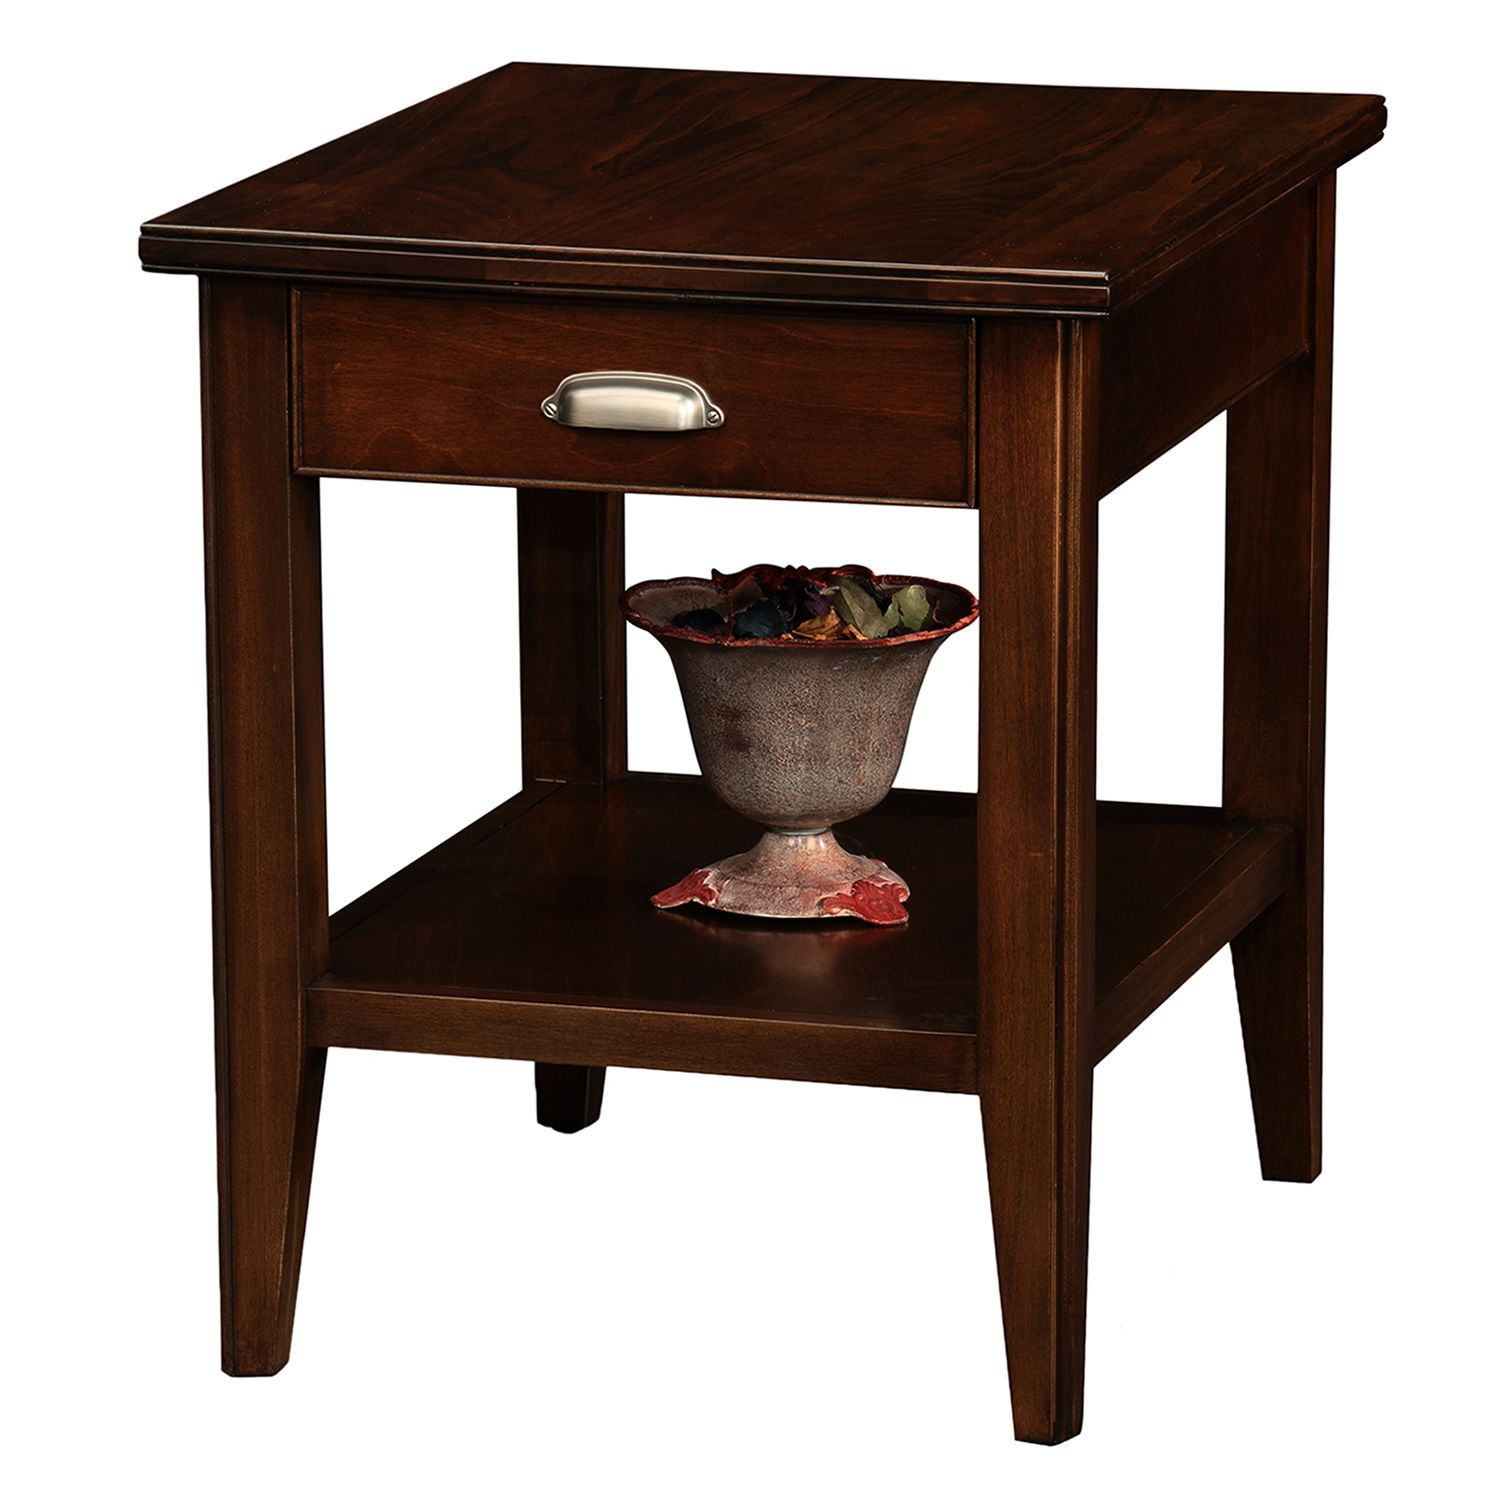 Attirant Leick Furniture Chocolate Cherry Finish 1 Drawer End Table